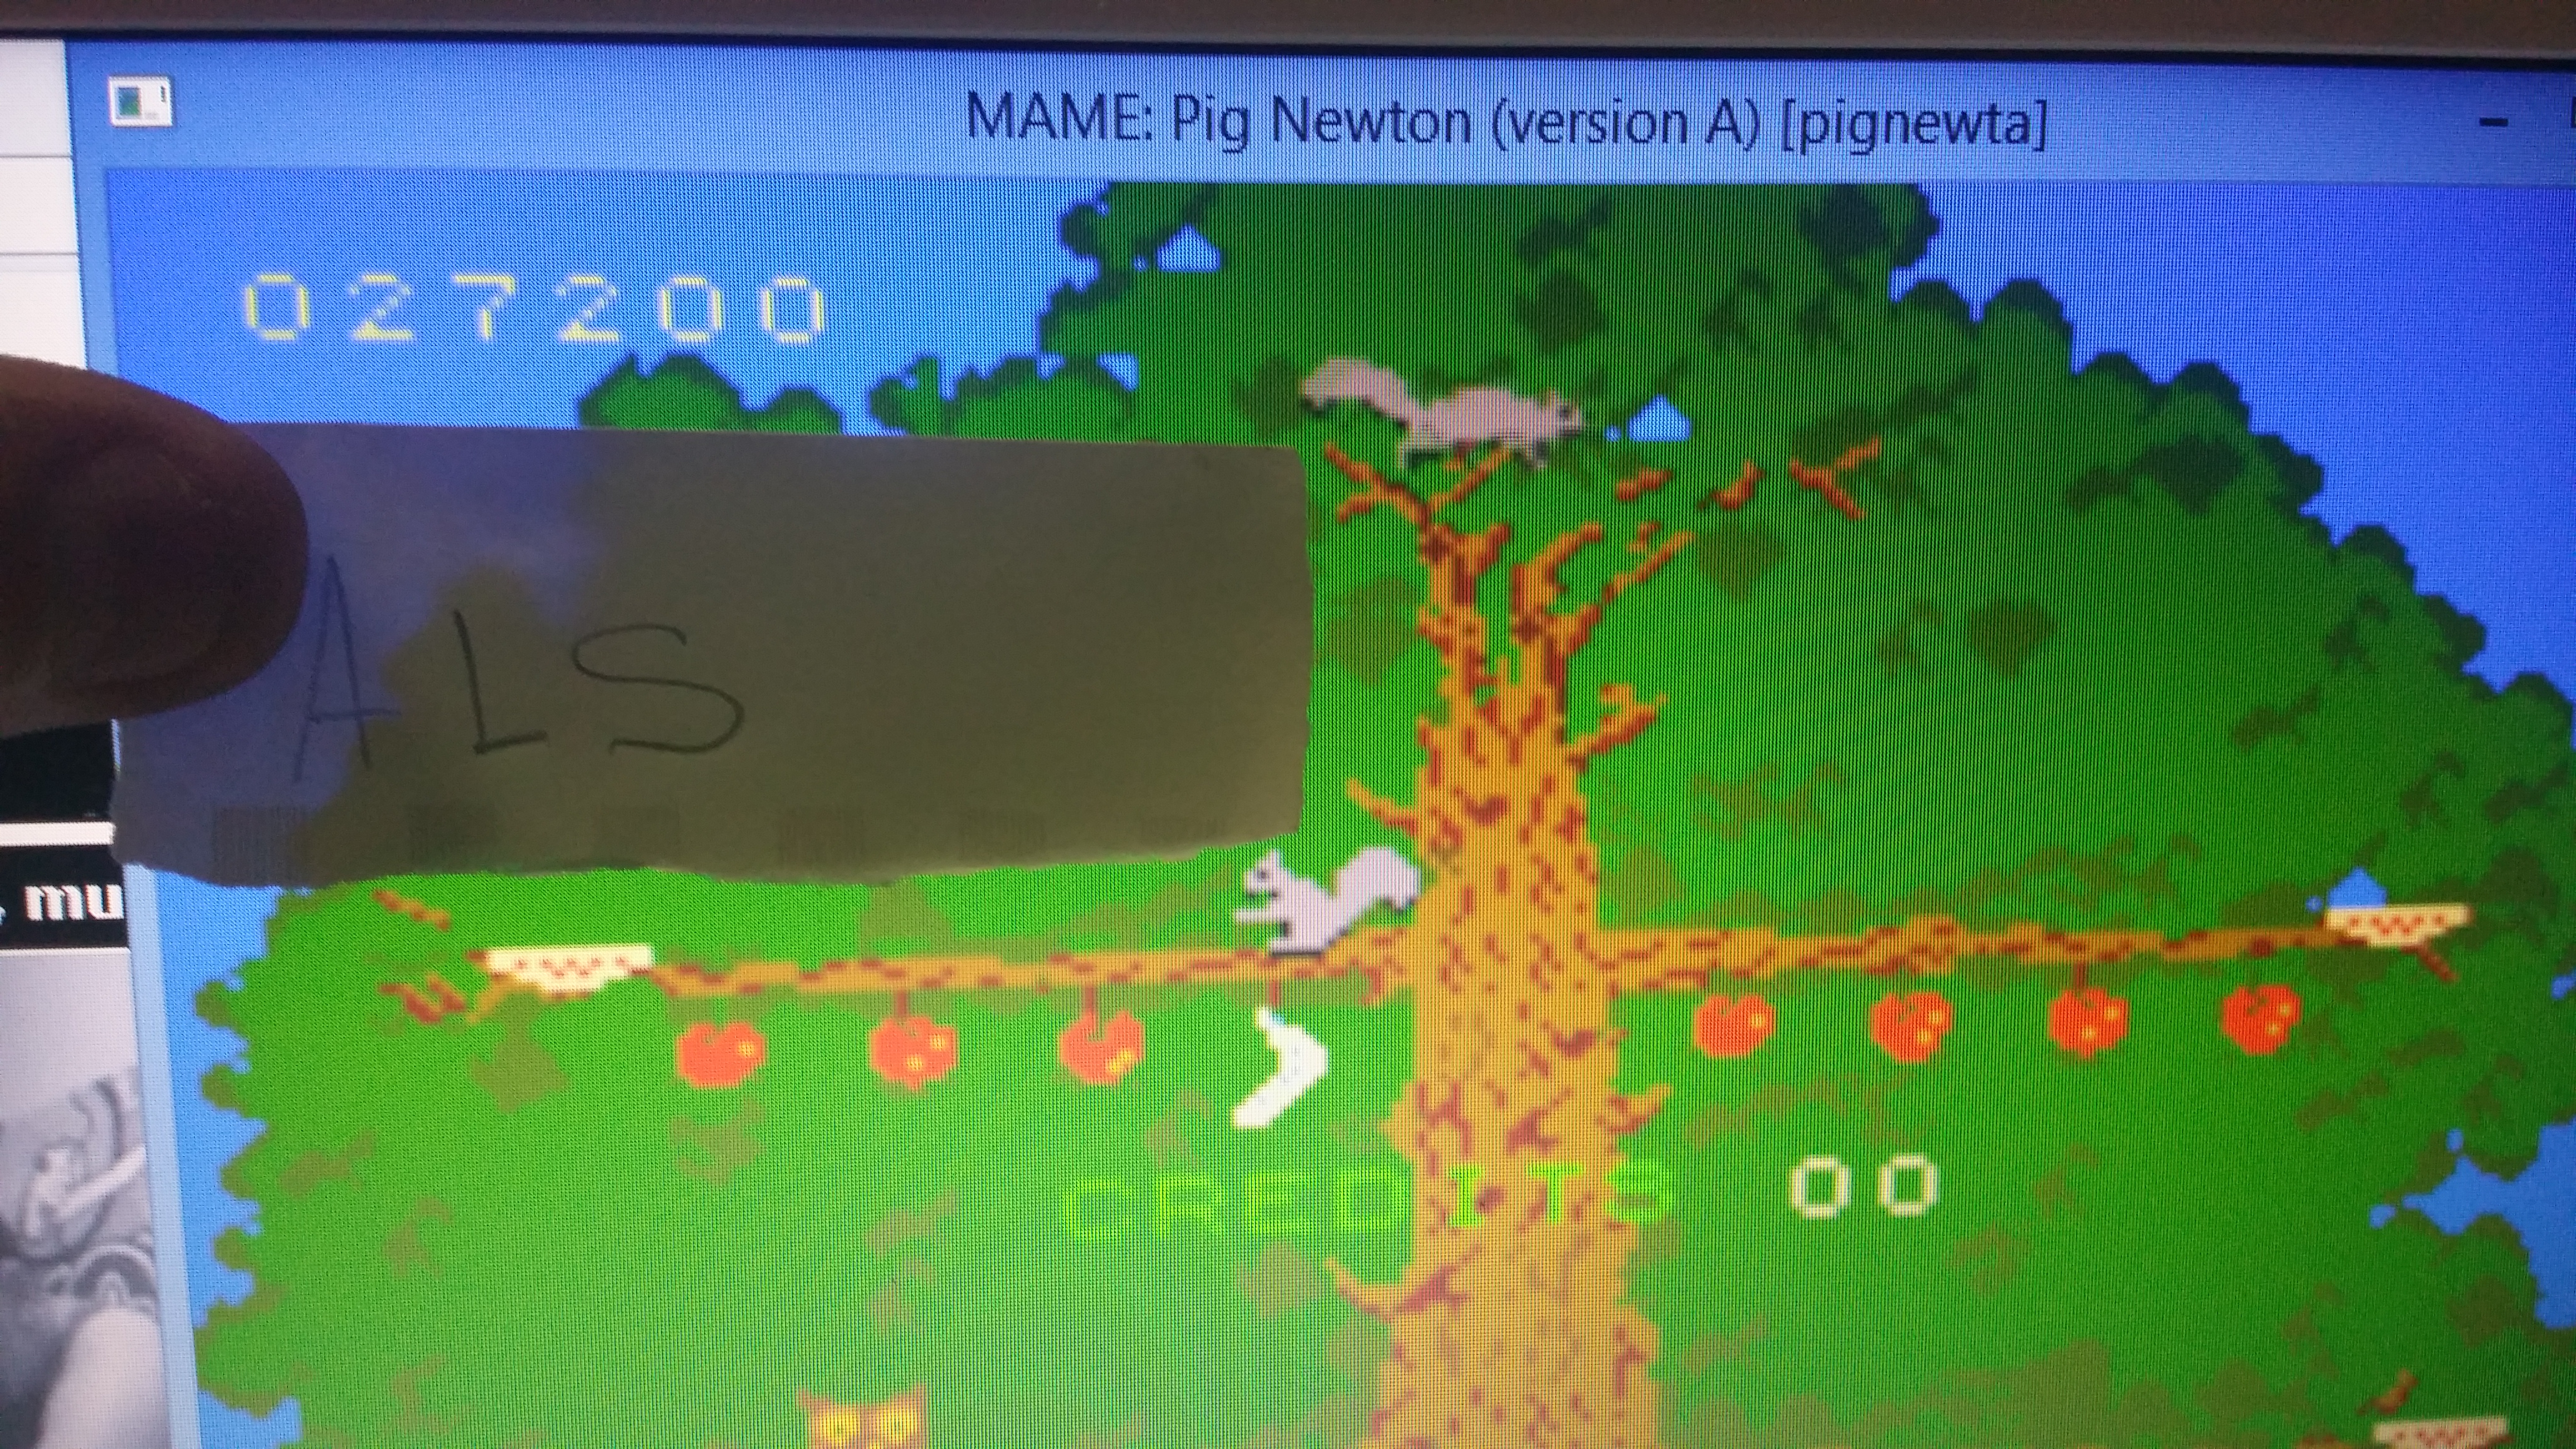 muscleandfitness: Pig Newton [pignewt] (Arcade Emulated / M.A.M.E.) 27,200 points on 2014-05-24 04:58:44